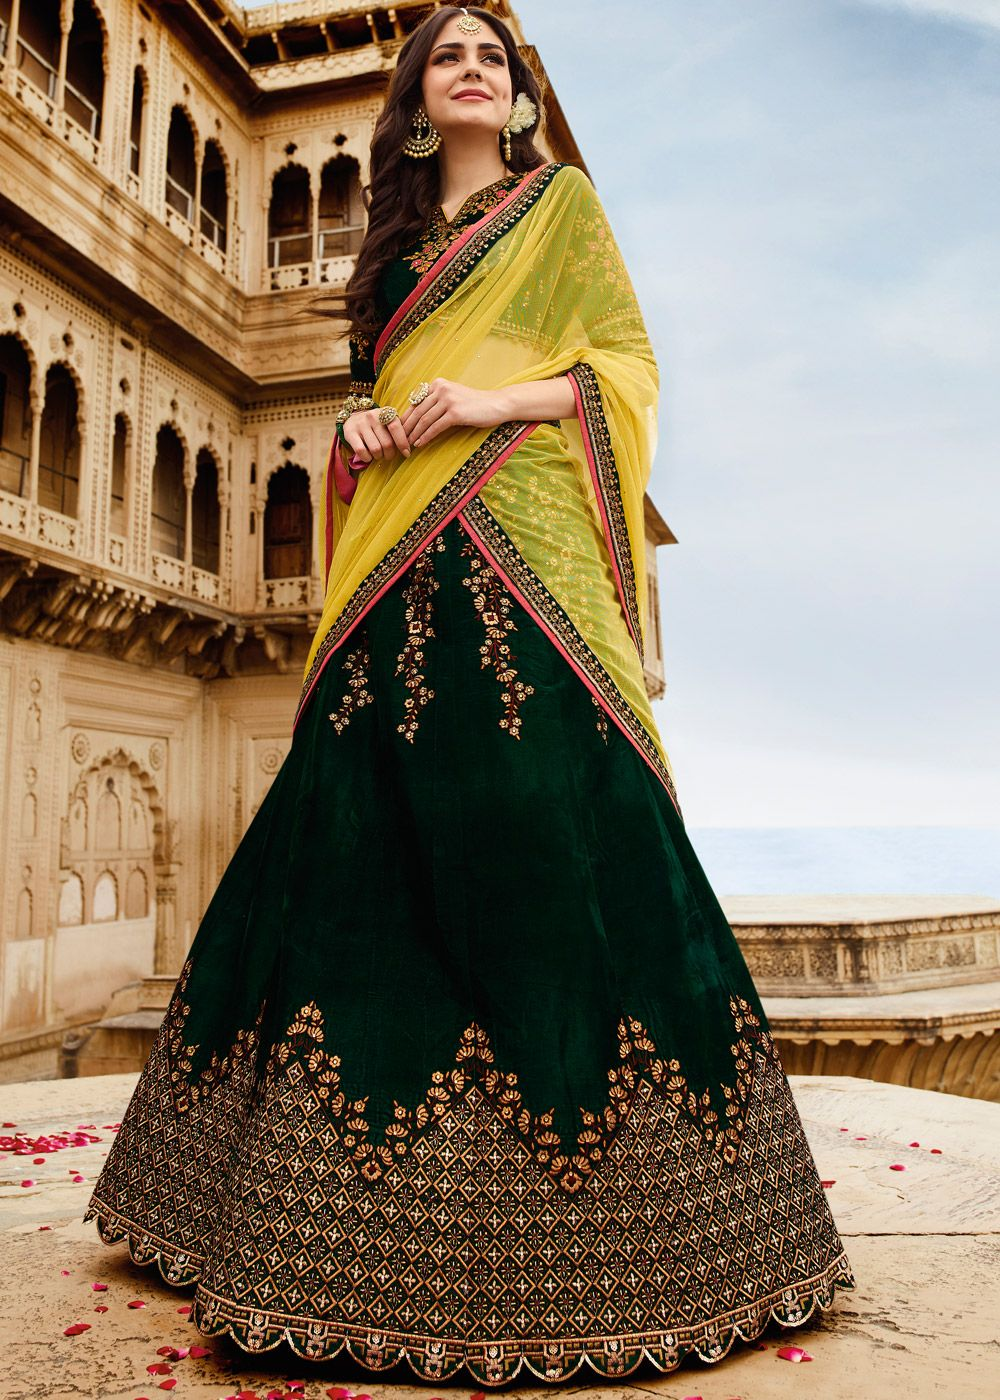 60309ea22b Dark green velvet lehenga paired with matching choli enhanced by detailed  floral embroidery. Accompanied by a yellow soft net dupatta in stone work.